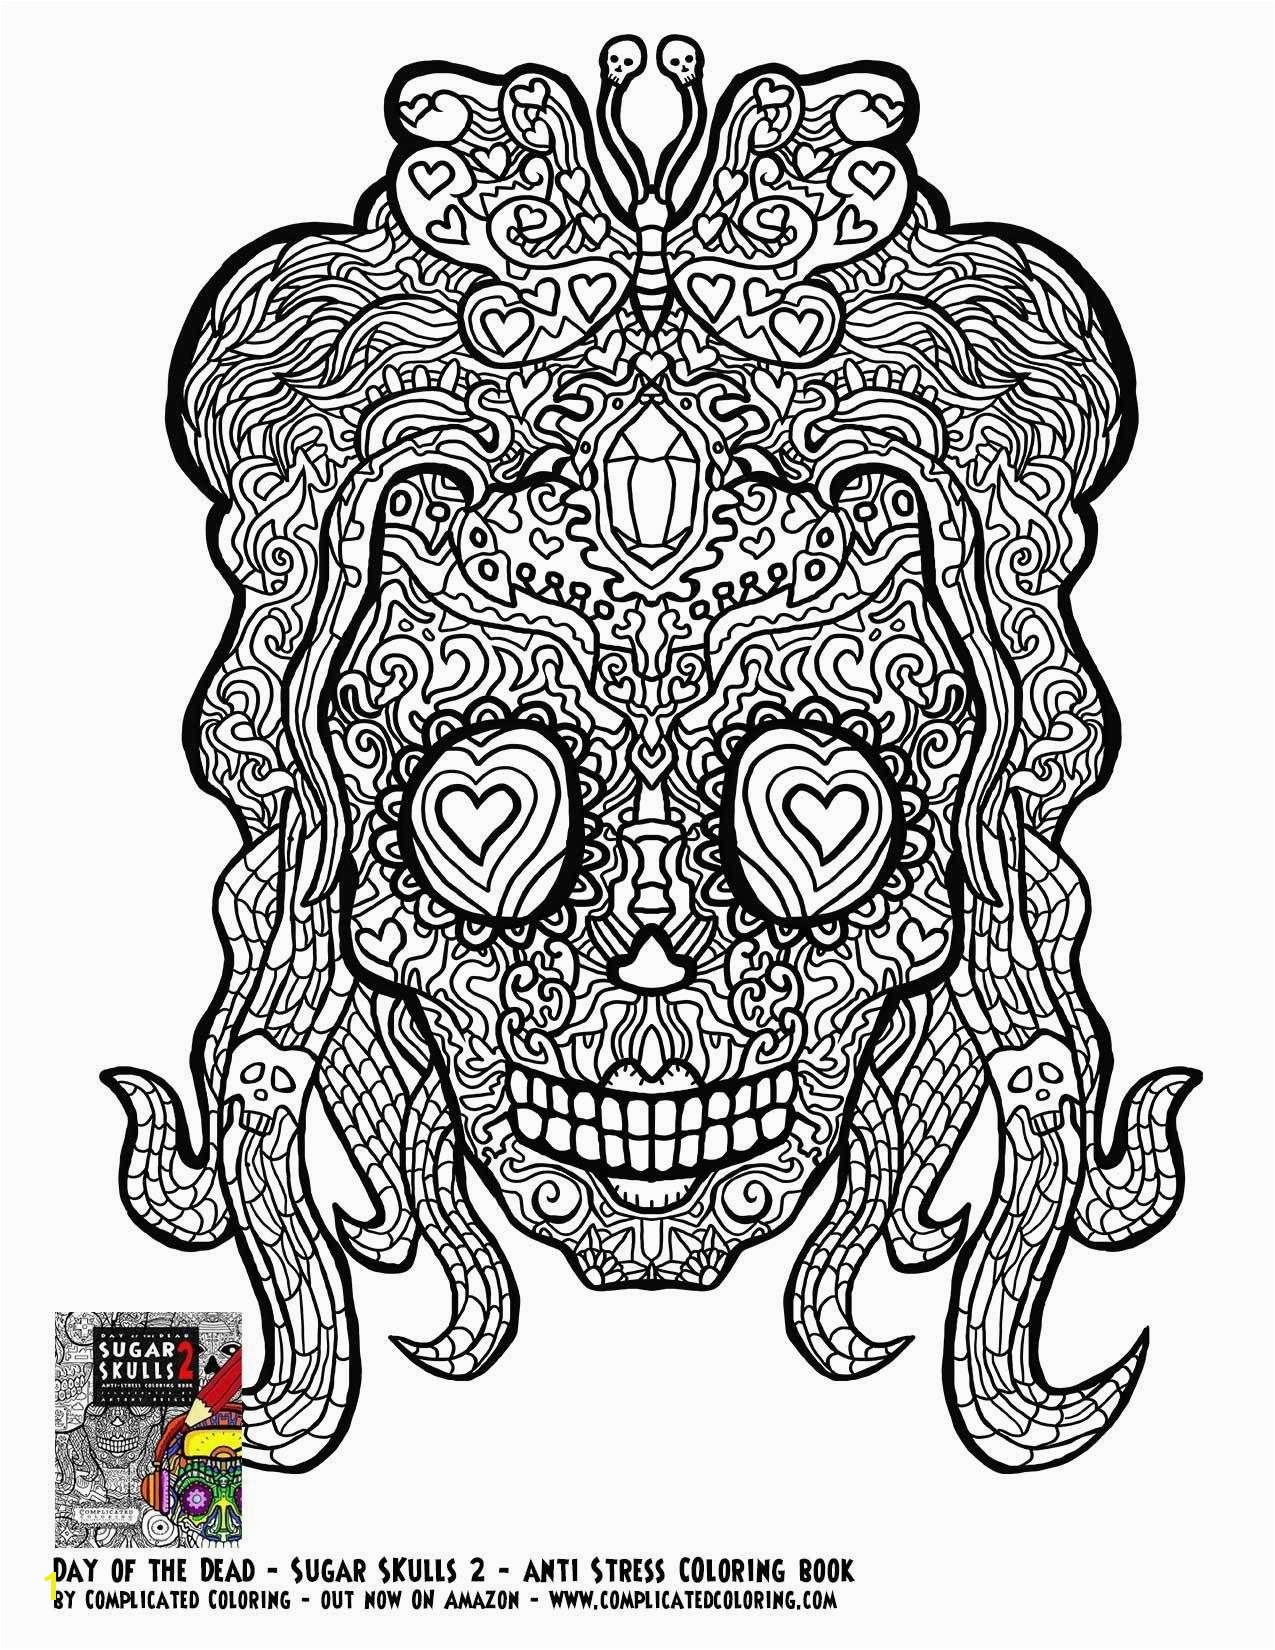 Girl Sugar Skulls Coloring Pages Printable Printable Coloring Book Pages for Adults New Sugar Skull Day